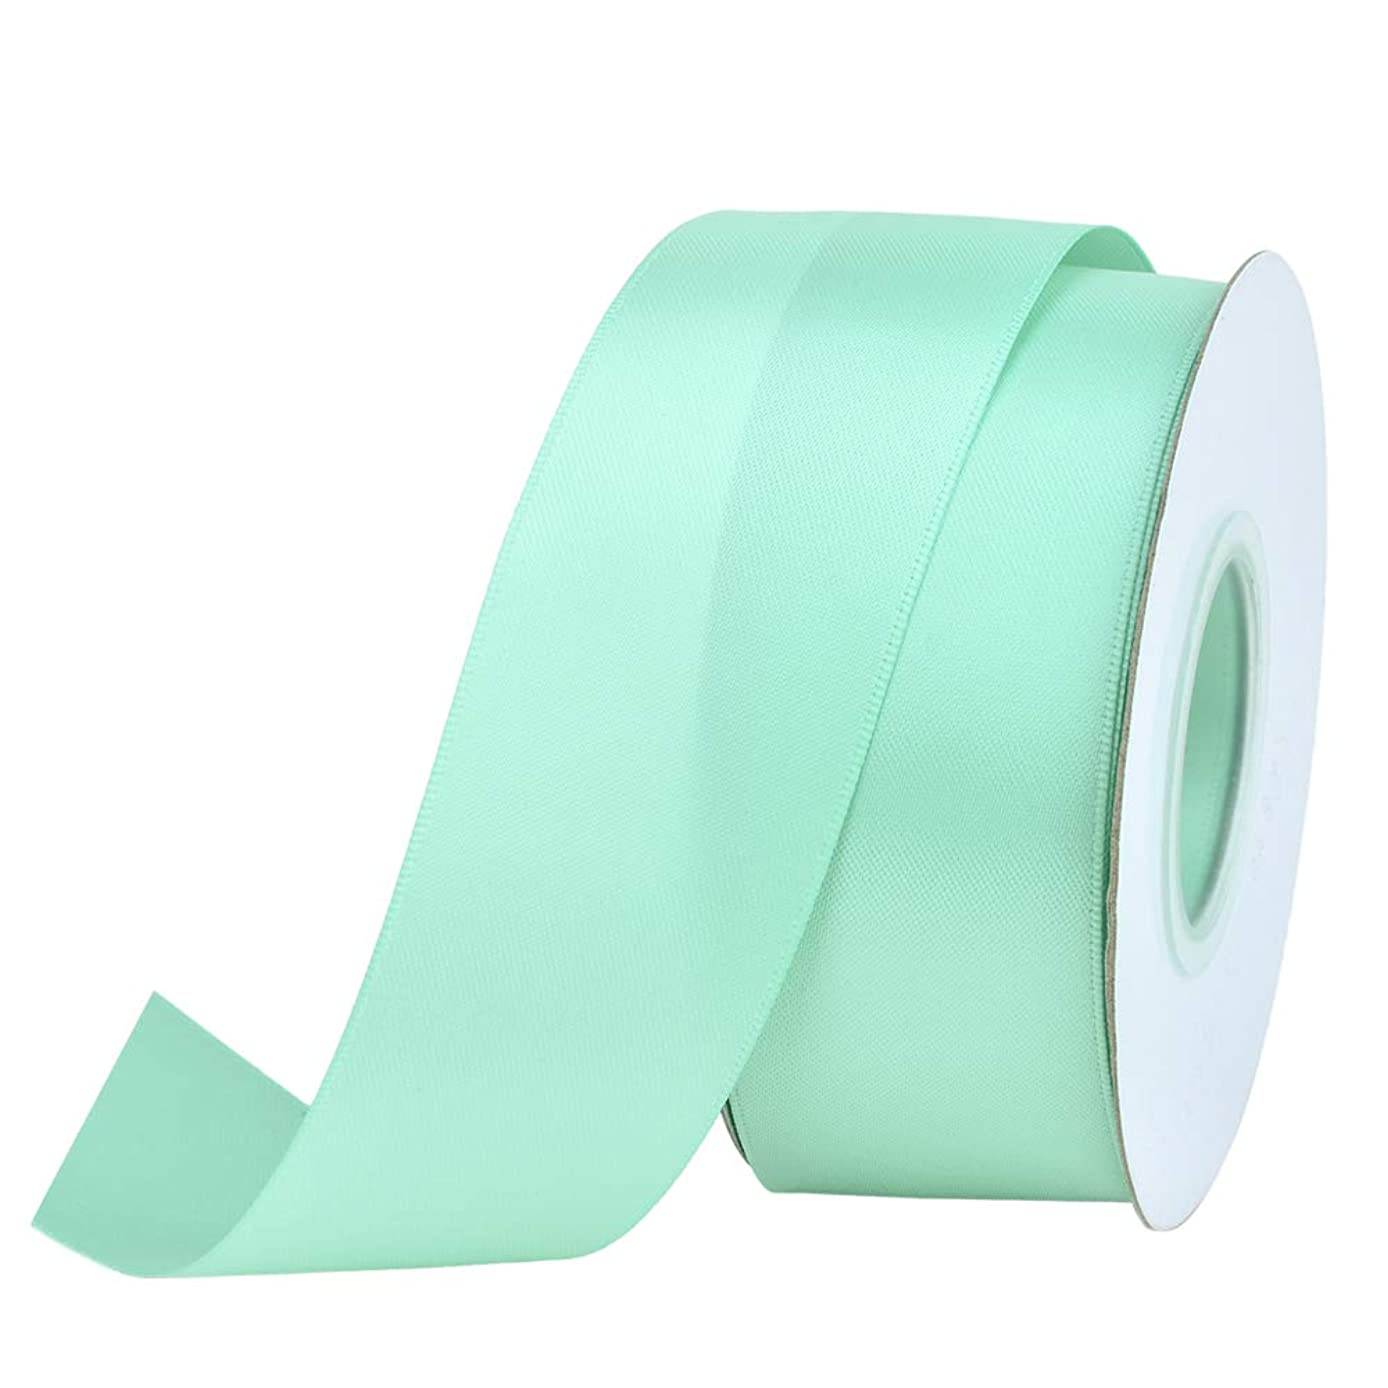 Ribest 1-1/2 inch 25 Yards Solid Double Face Satin Ribbon Per Roll for DIY Hair Accessories Scrapbooking Gift Packaging Party Decoration Wedding Flowers Aqua